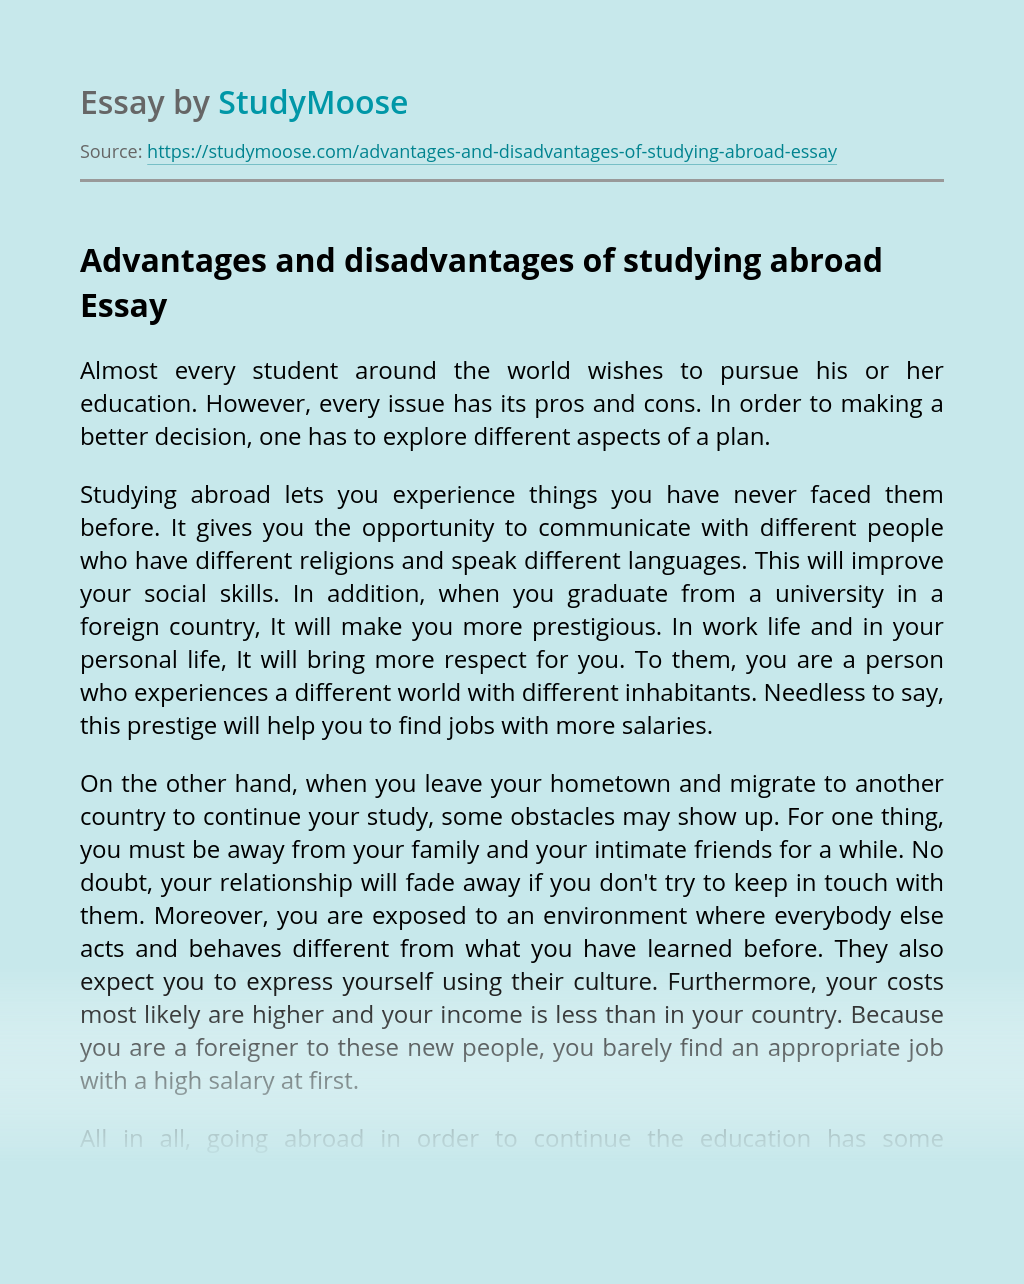 Advantages and disadvantages of studying abroad